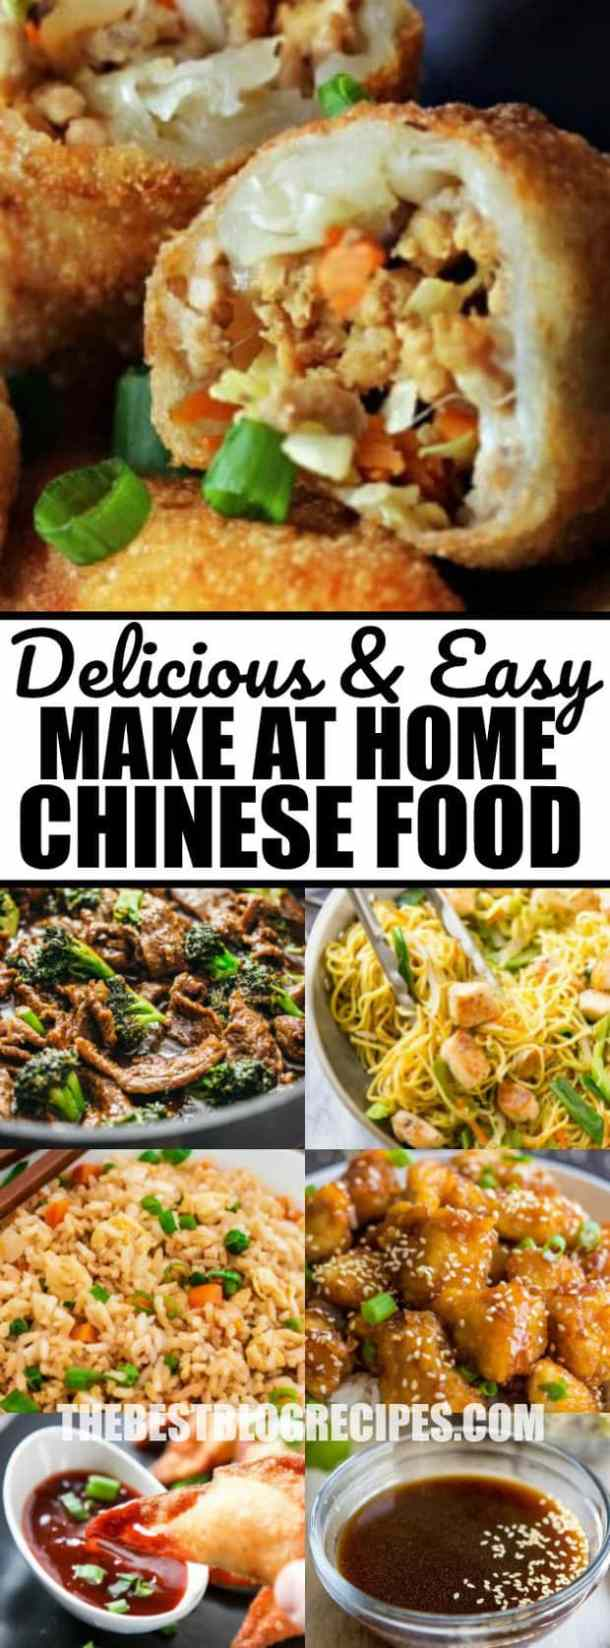 Delicious Easy Make at home Chinese Food